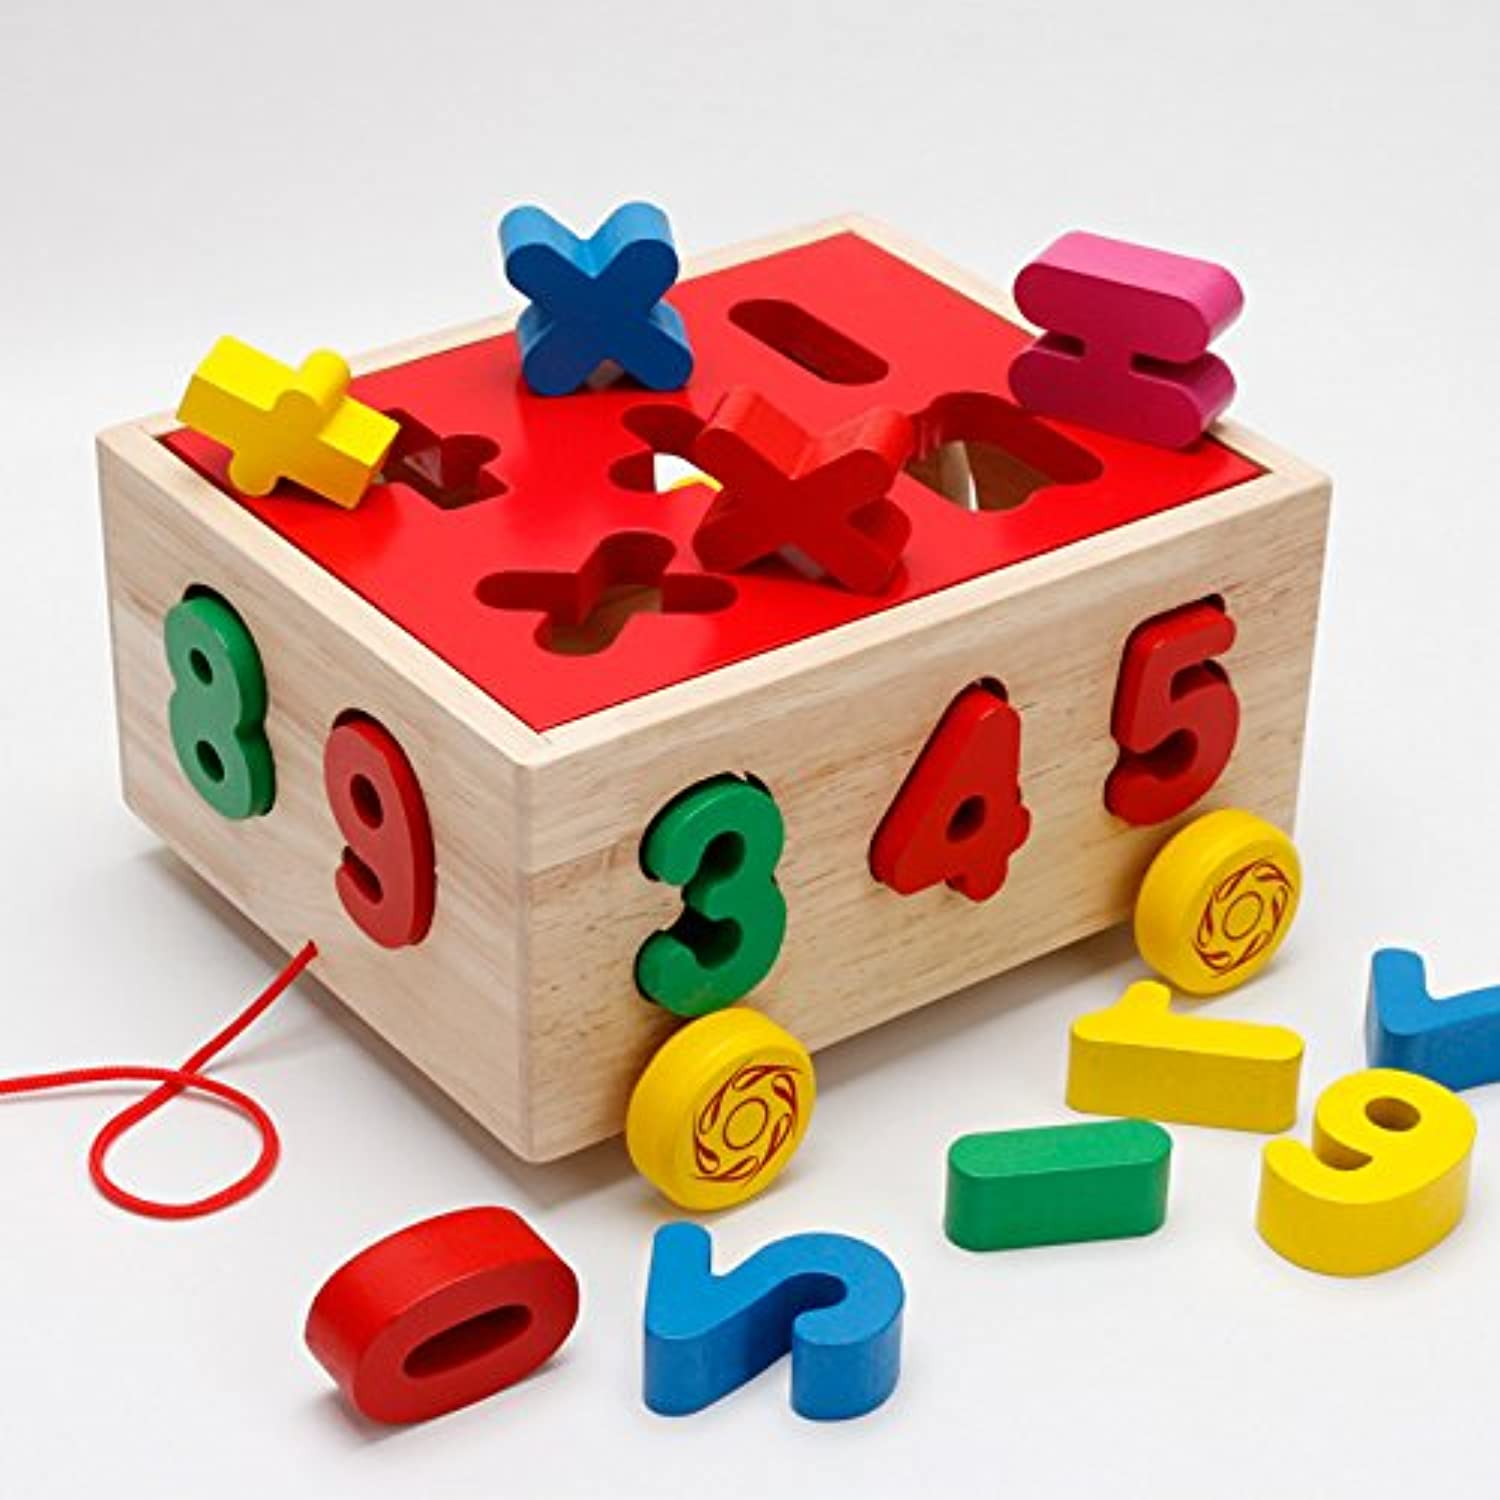 Puzzles  Baby Block Match Learning Educational Wood Toy 15 Holes Geometry   Digital Shape Intelligence Box Trailer Early Learn Cube Game  by ptk12  1 PCs